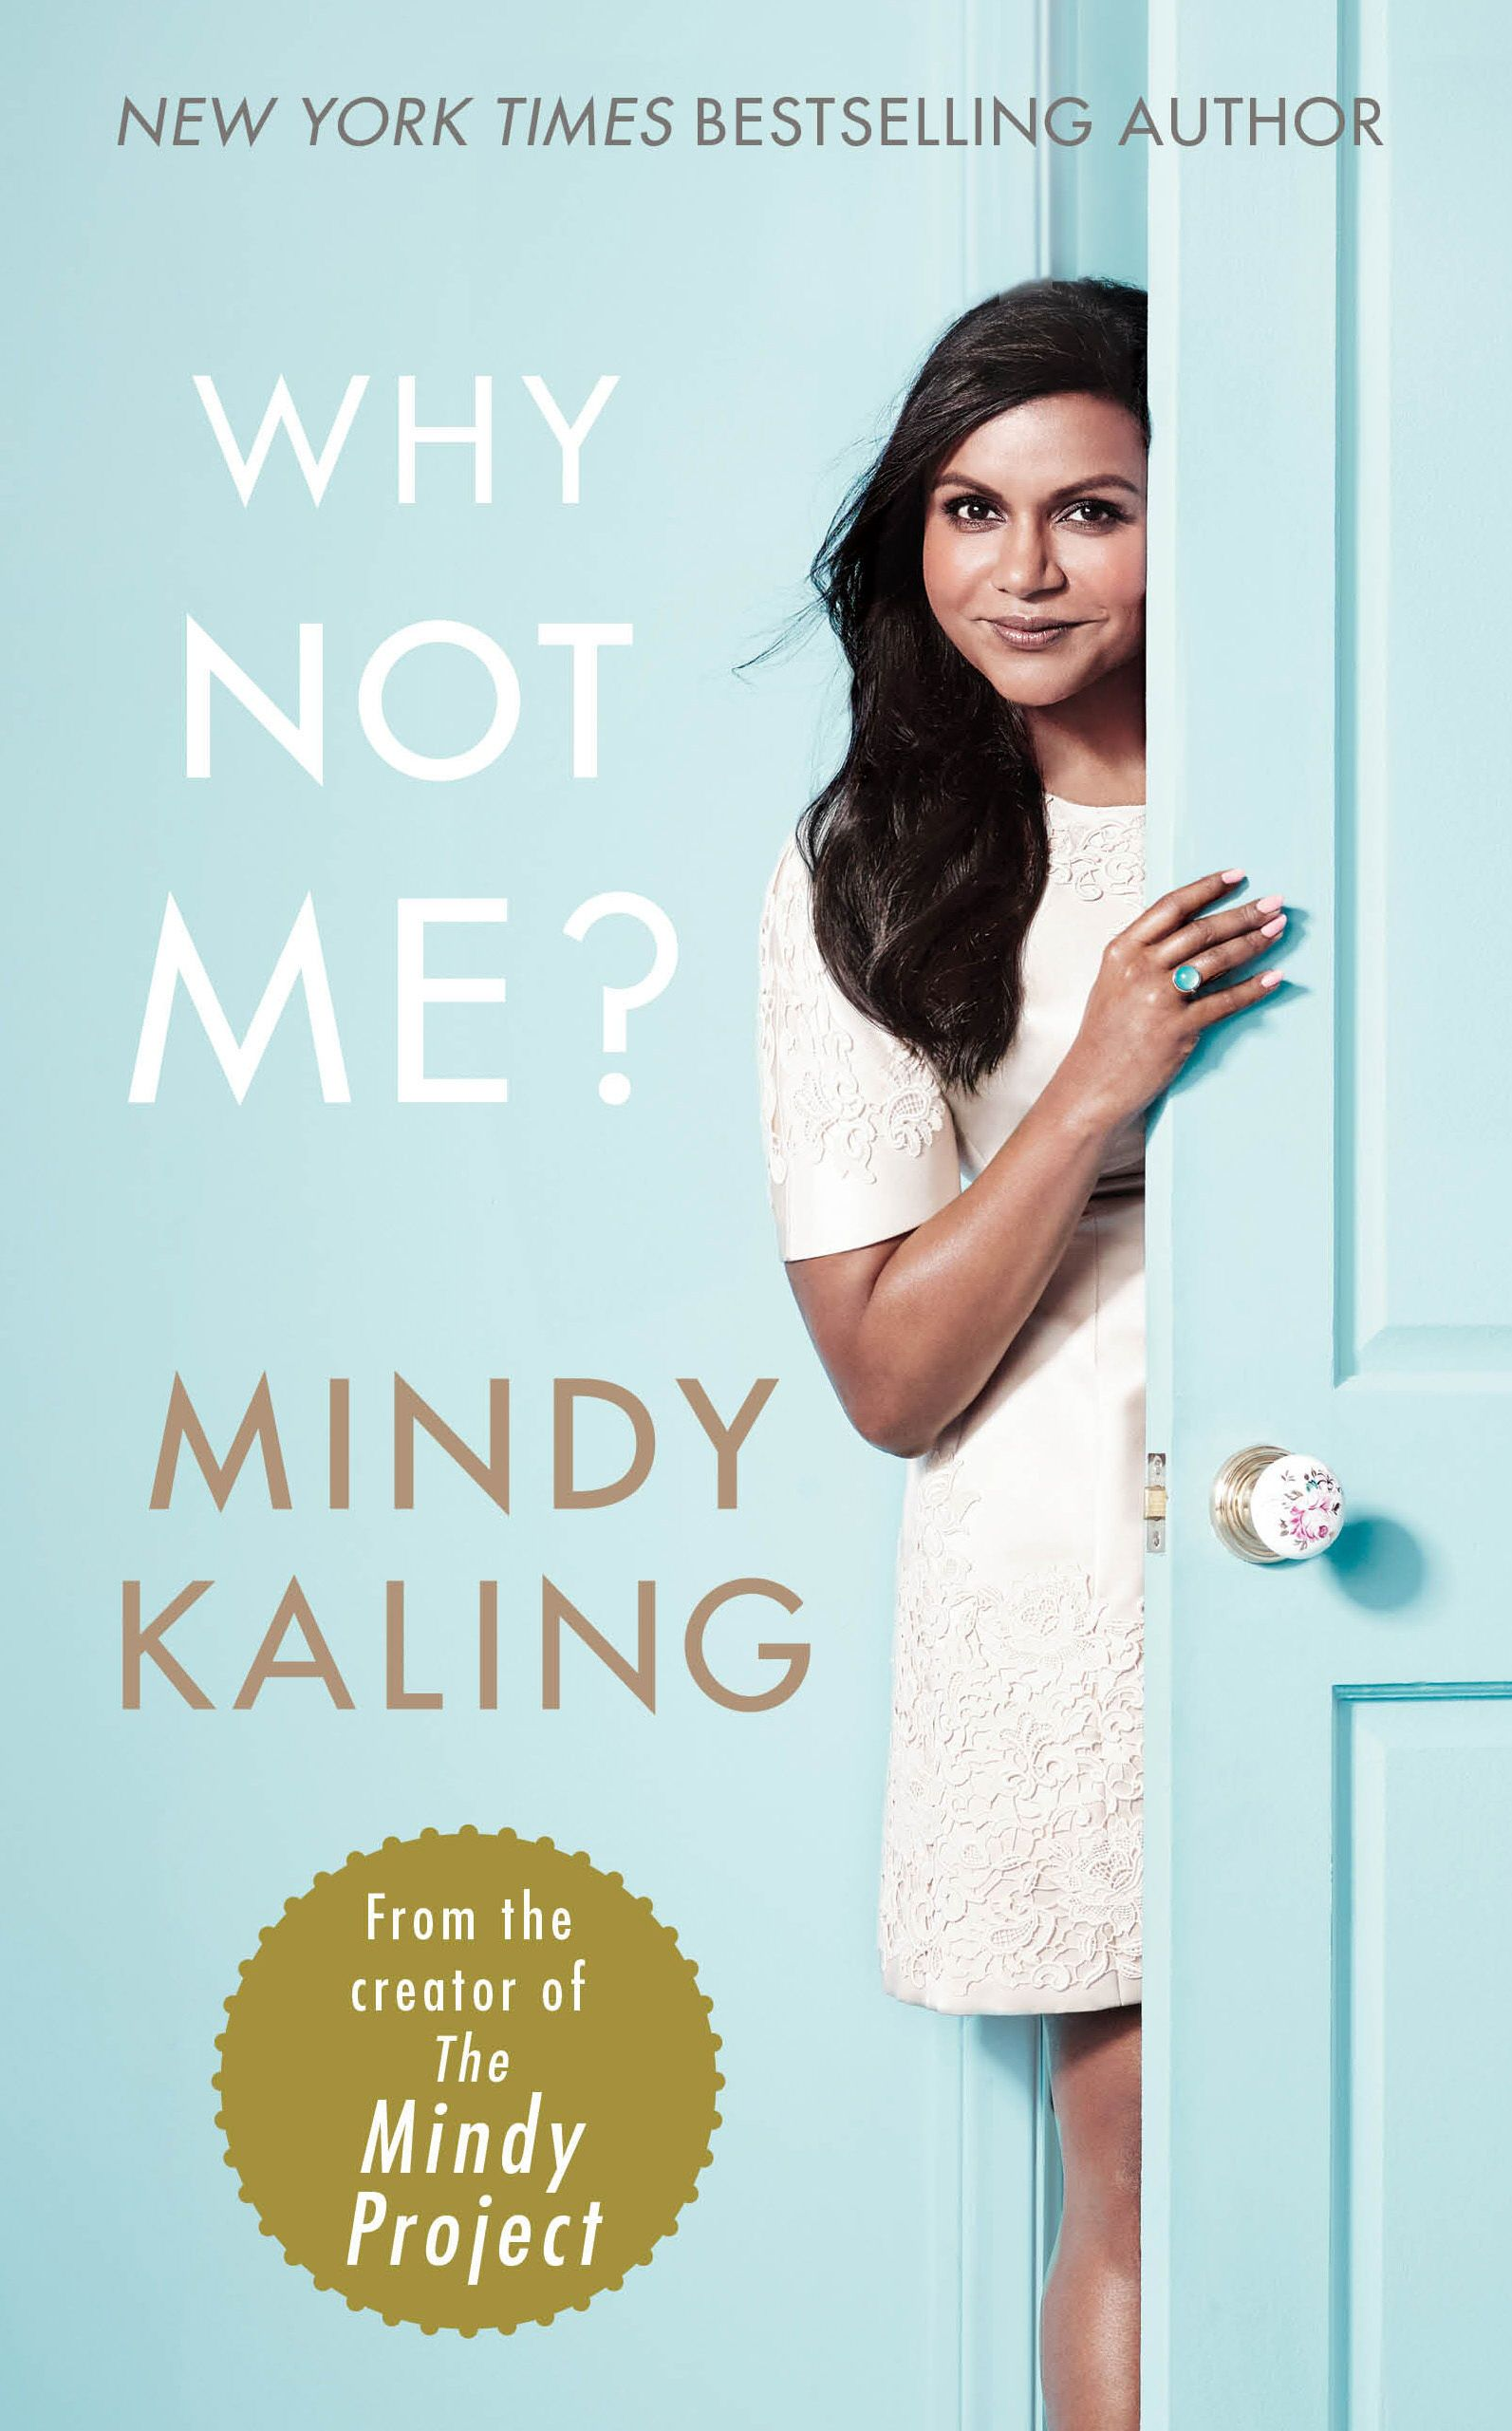 Why Not Me Mindy Kaling From The Author Of The Beloved New York Times Bestselling Book Is Everyone Hanging Out Without Me And The Creator And Libri Copertina